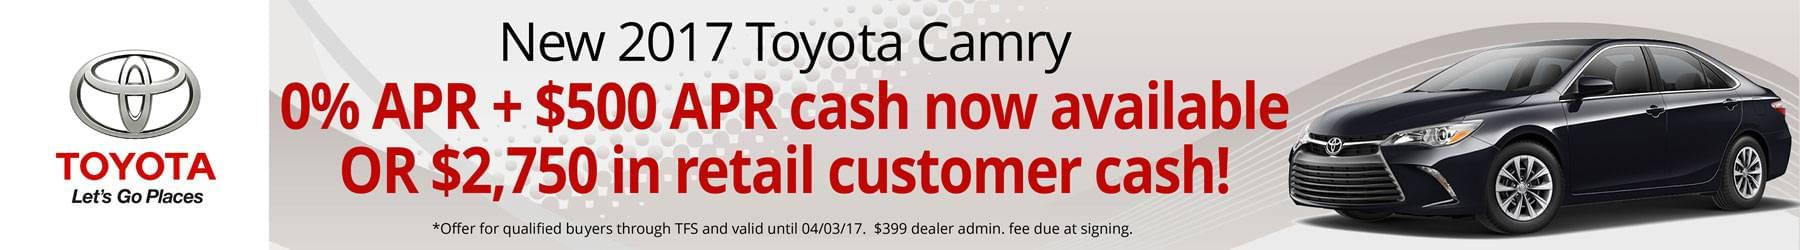 new-camry-banner